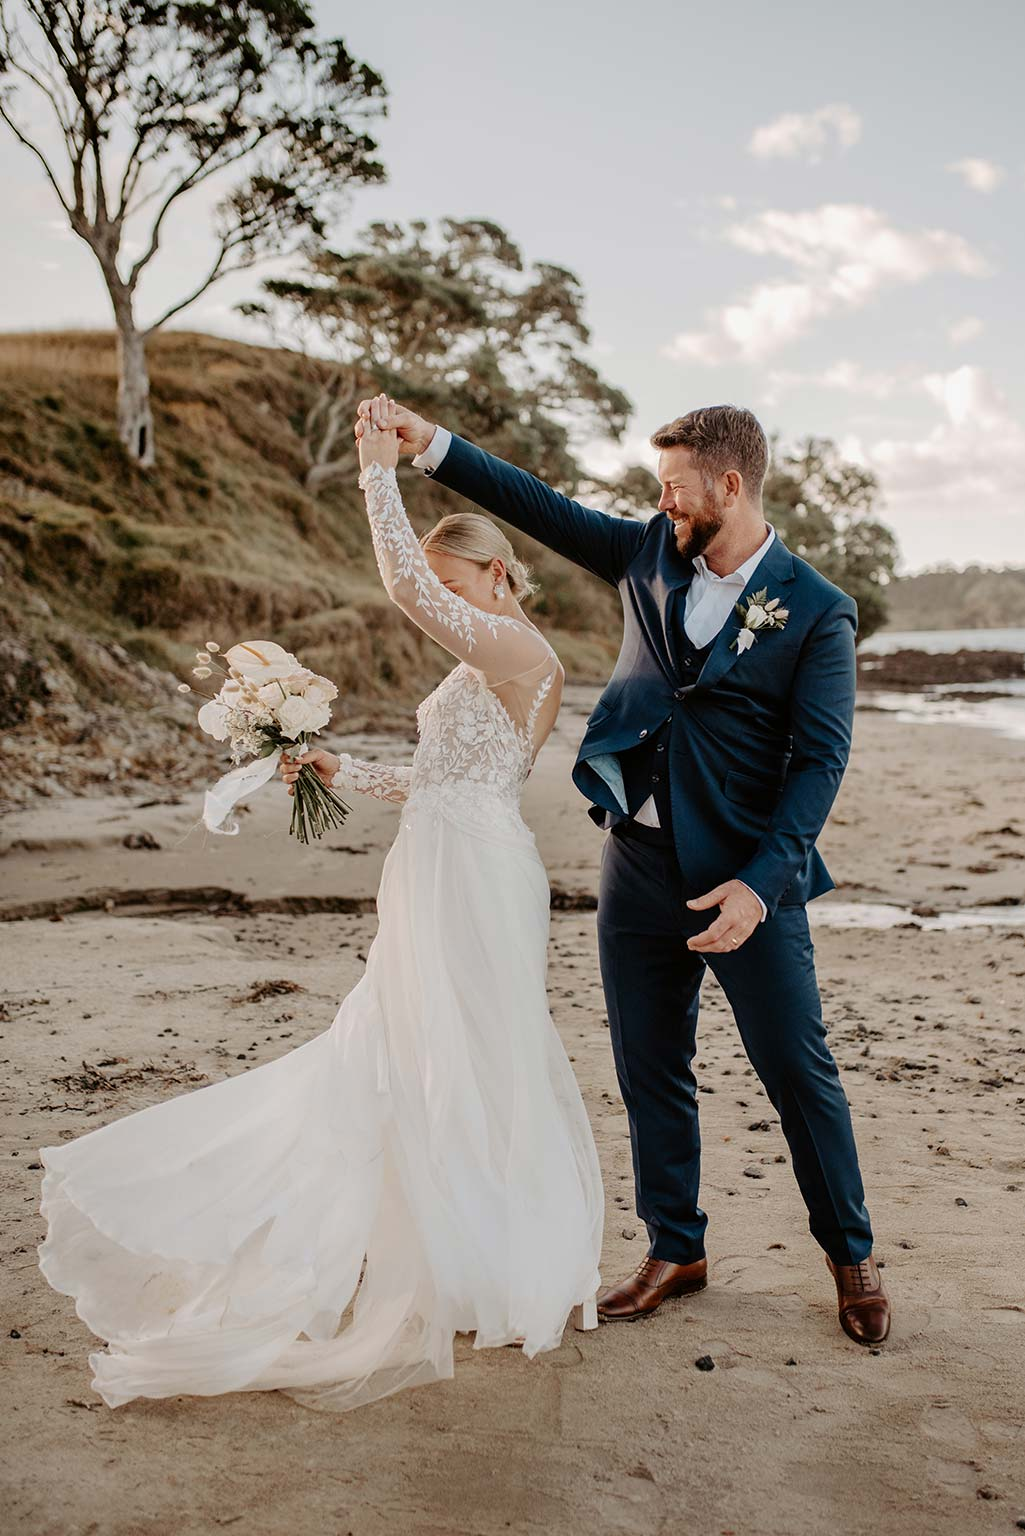 Vinka Design Features Real Weddings - bride and groom dance on the sand - bride wearing a bespoke Makaira gown with silk-chiffon and tulle overskirt giving her a beautiful train which could be removed later on to reveal a floor length party dress